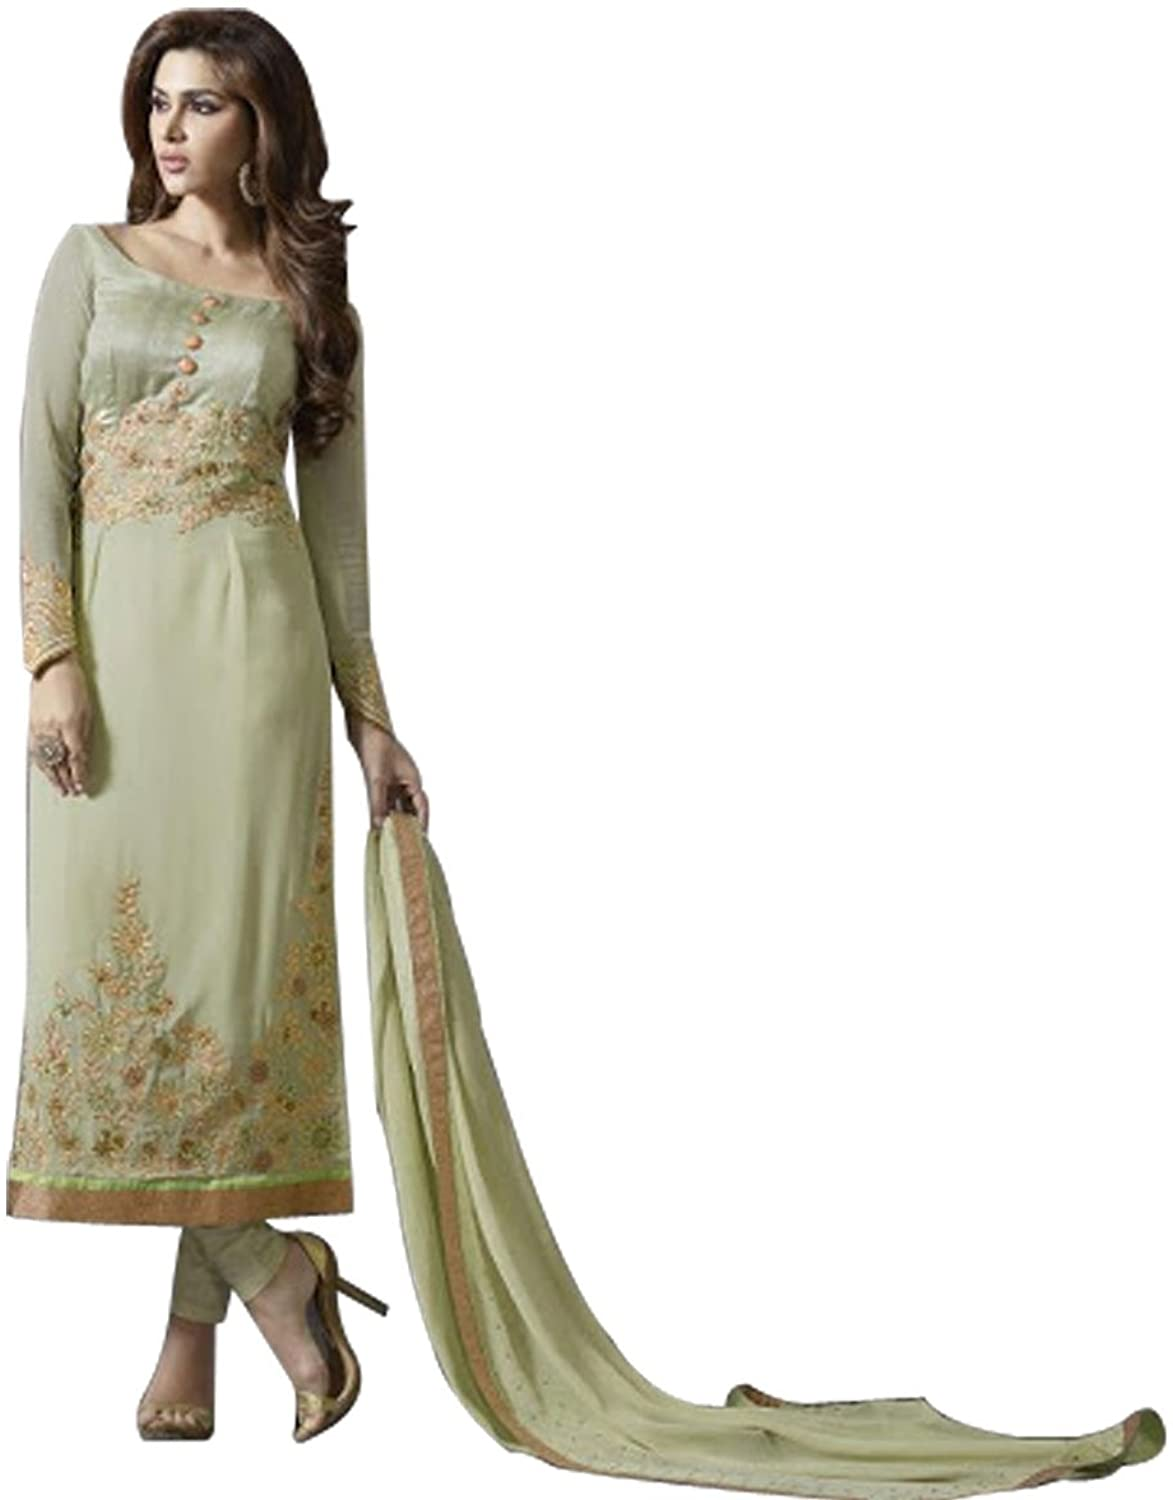 Ethnic Anarkali Shalwar Kameez Suit Wedding Ethnic Muslim Dress Sexy